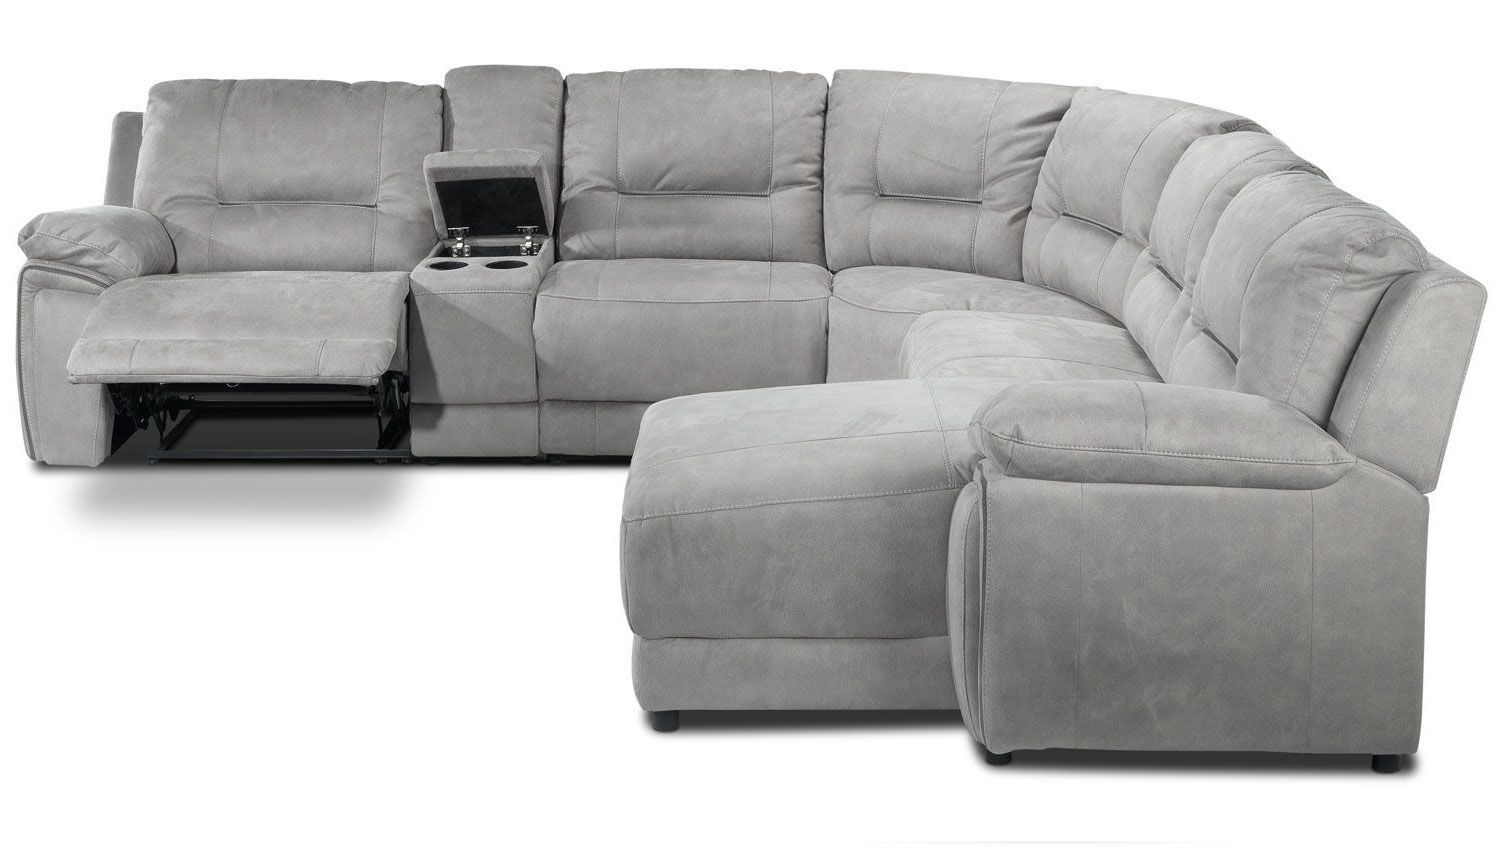 Pasadena 6 Pc Reclining Sectional With Chaise Reclining